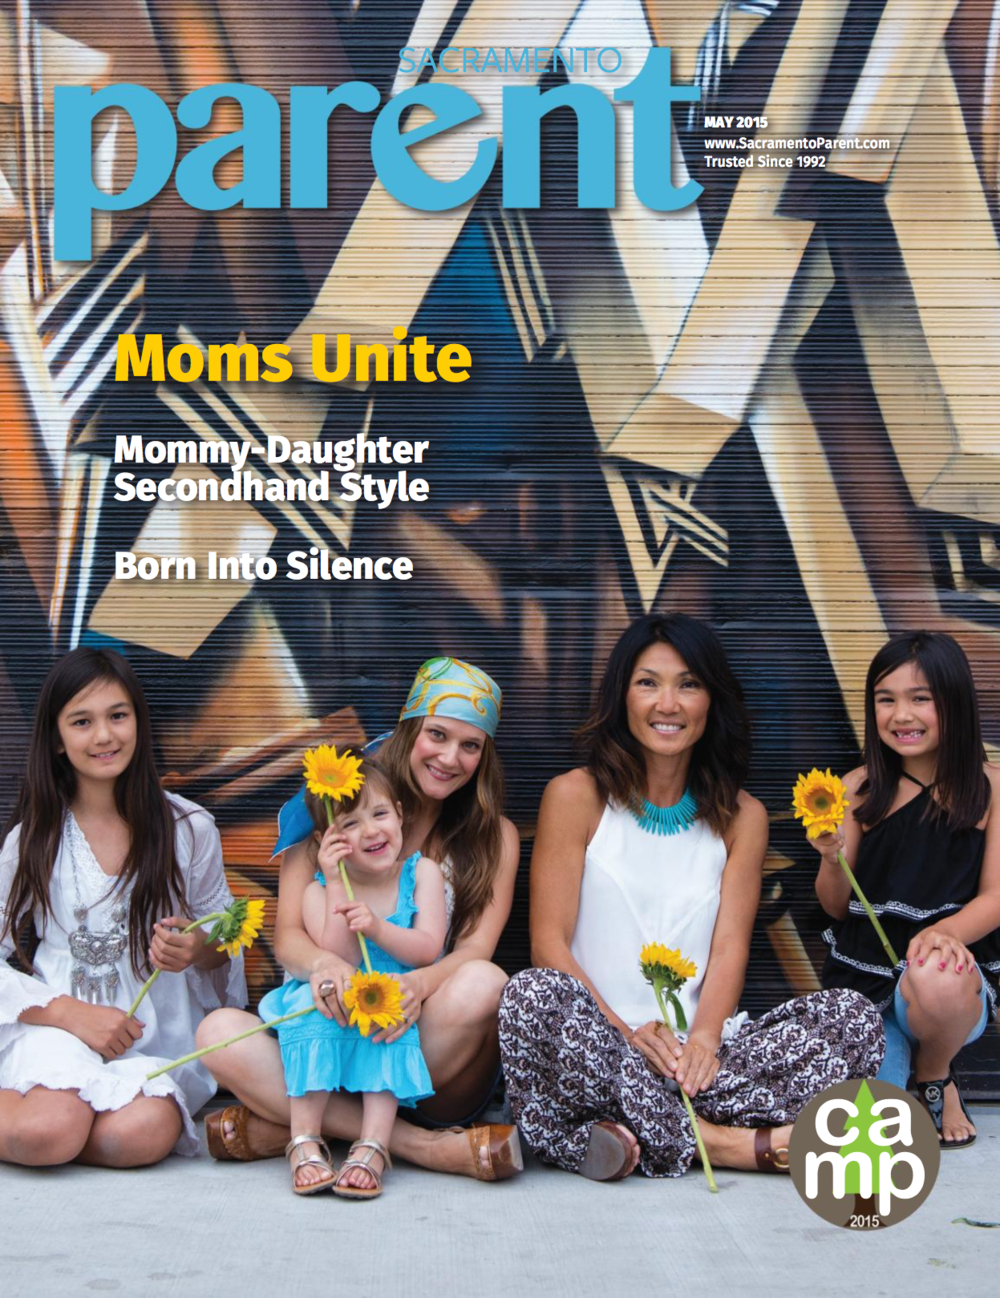 Sacramento Parent Cover - May 2015.png